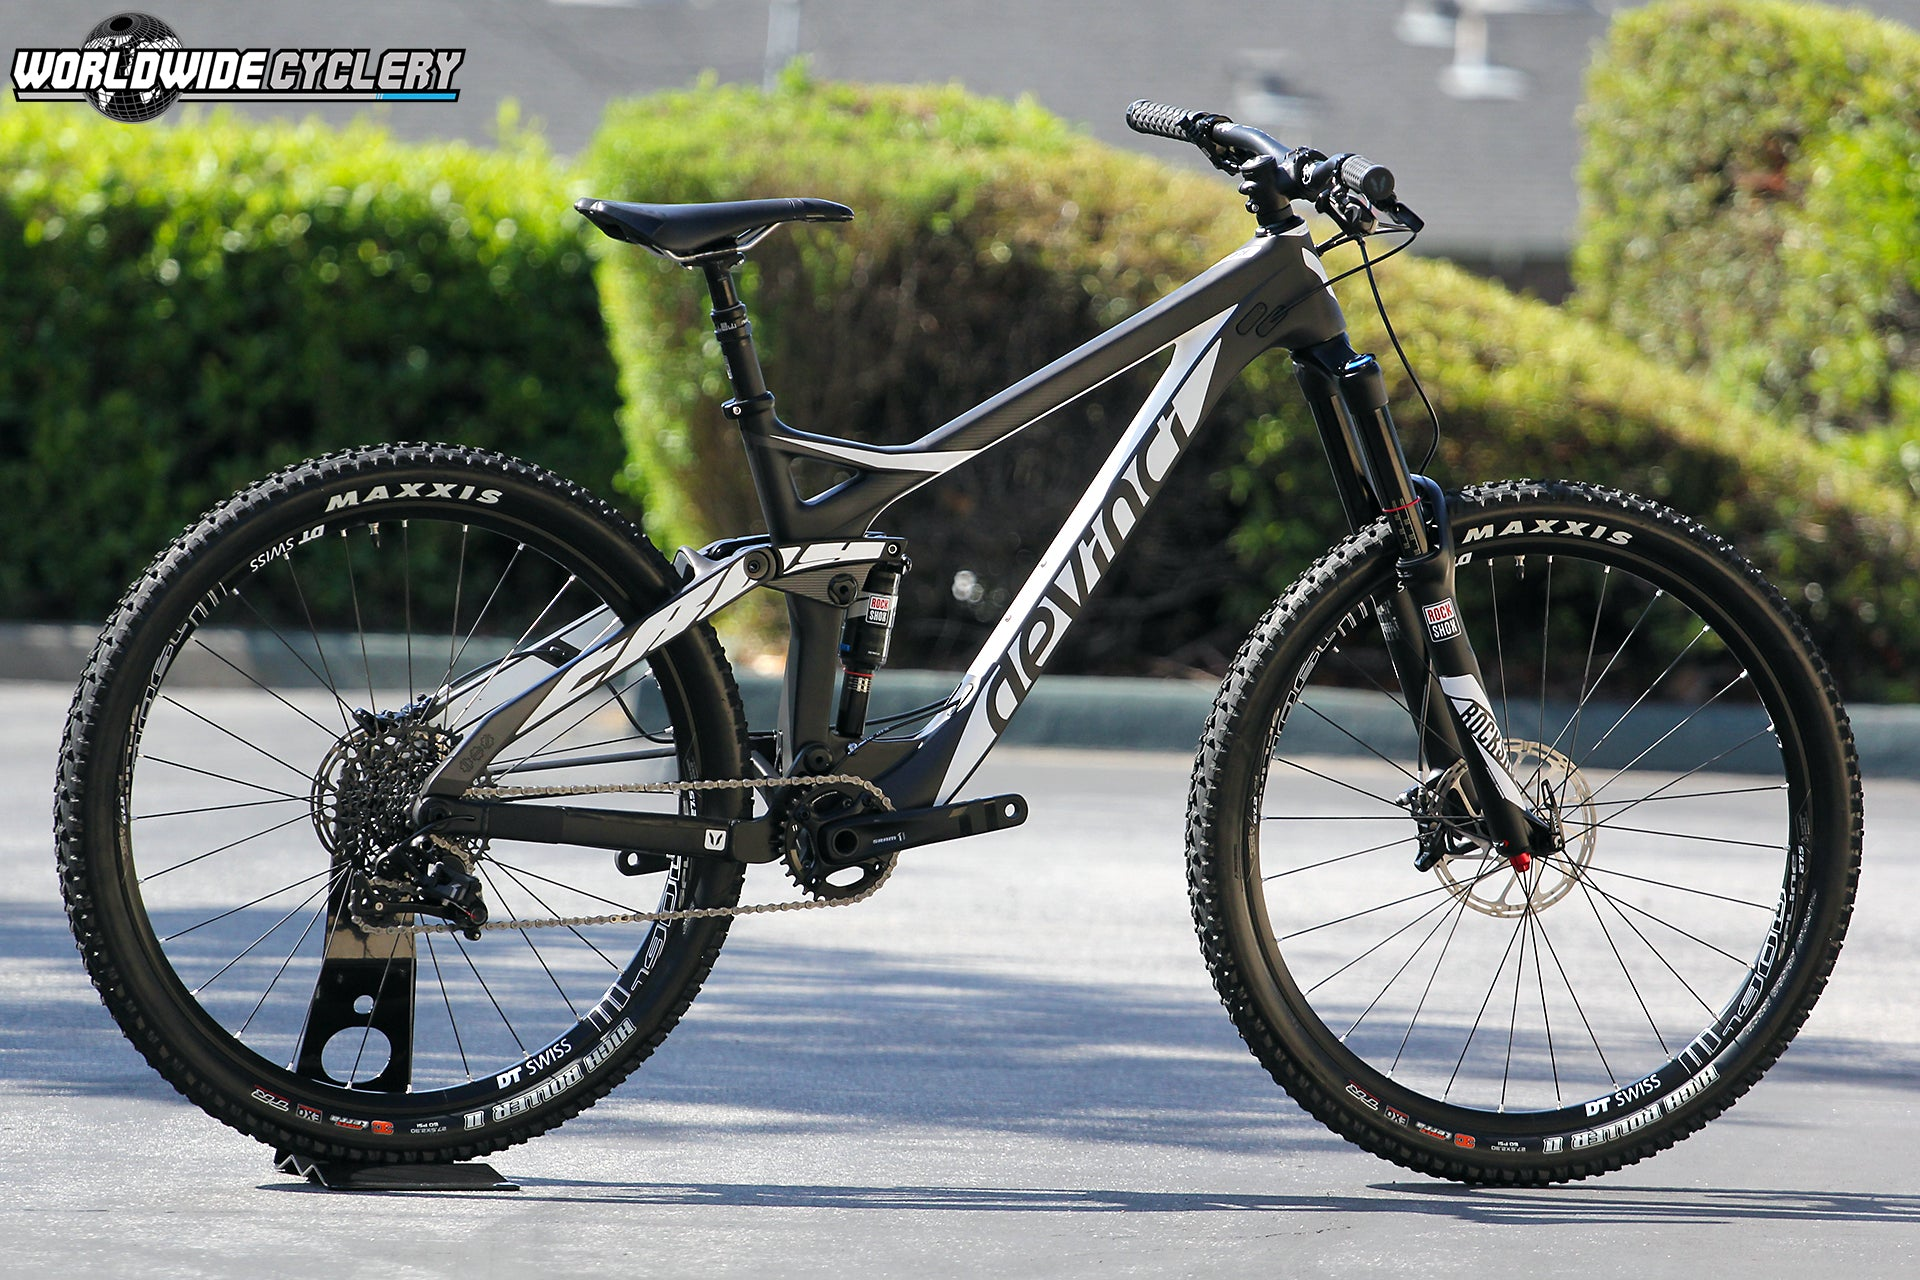 Devinci Troy - Worldwide Cyclery